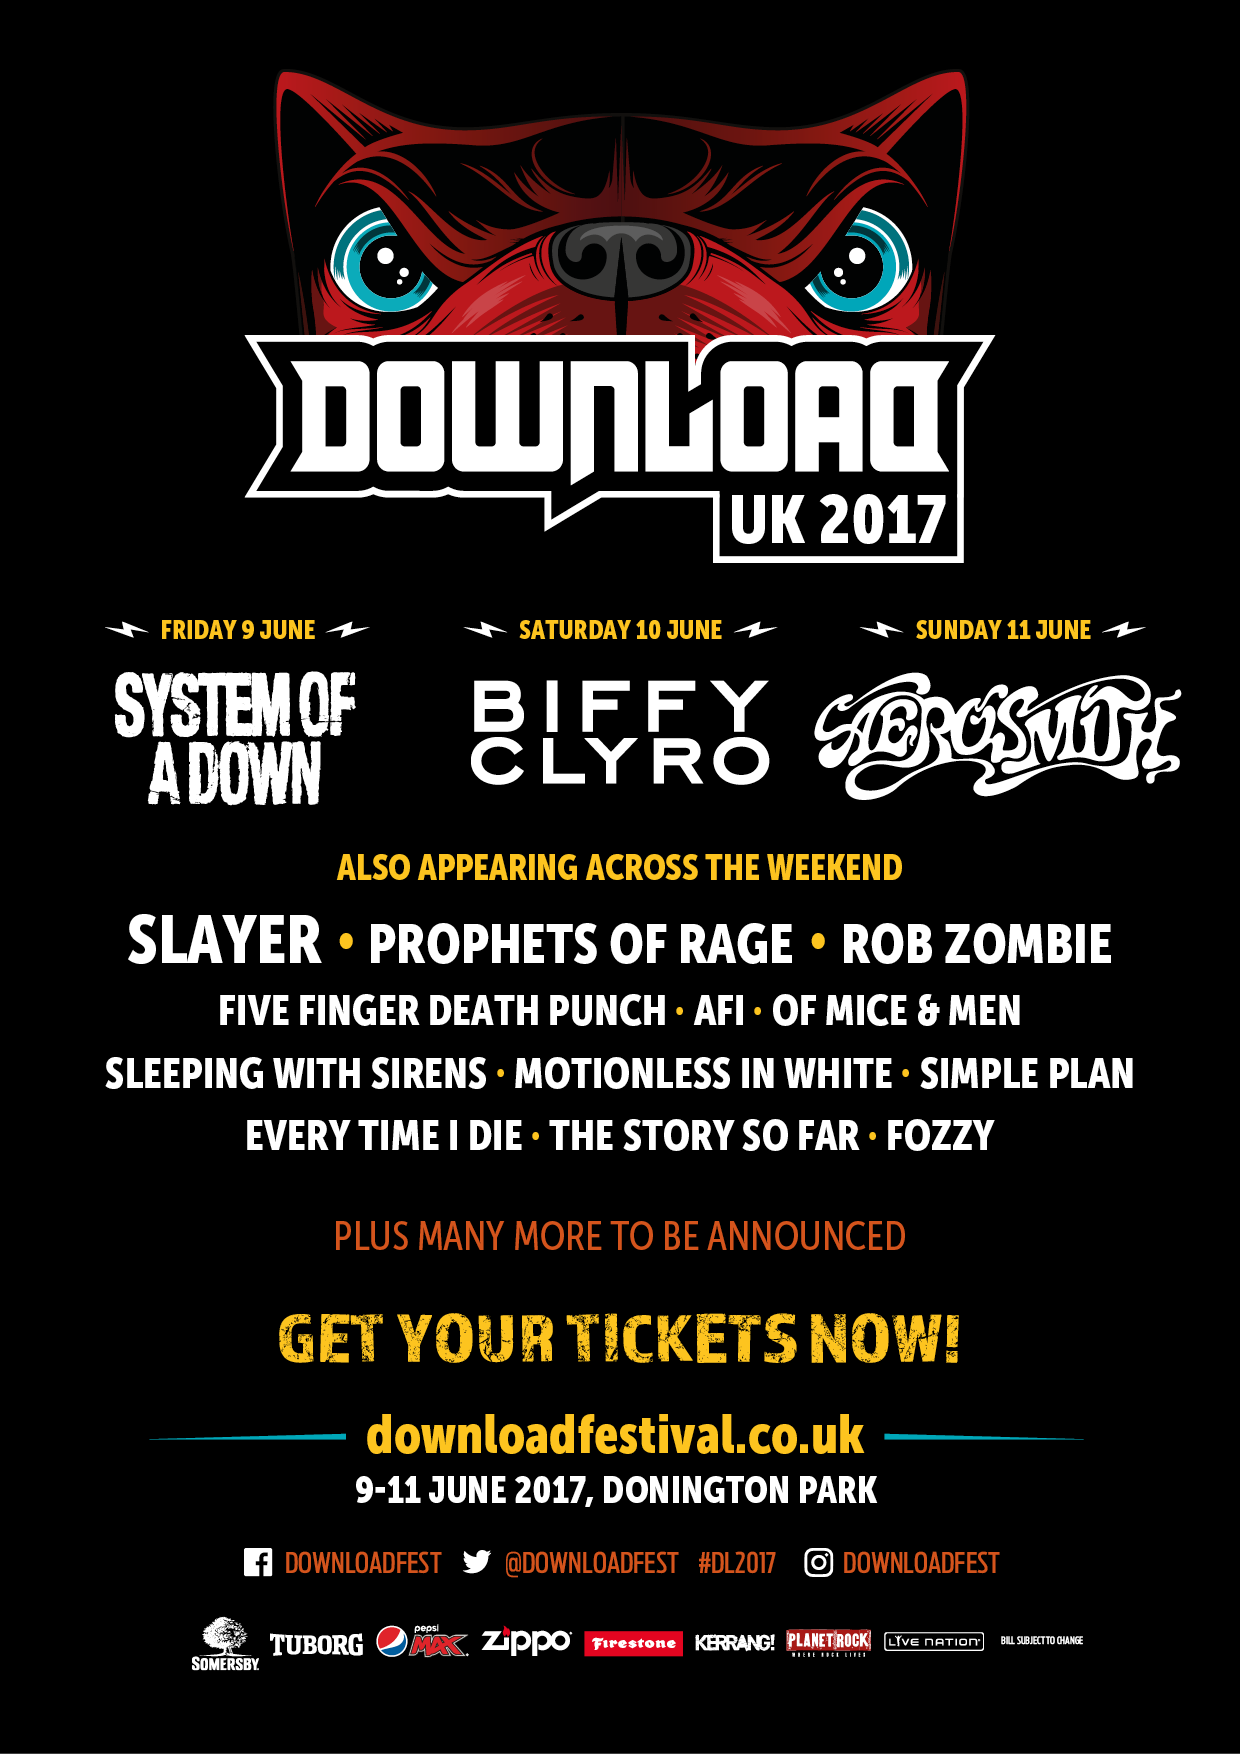 Download 2017 - Headliners Announced